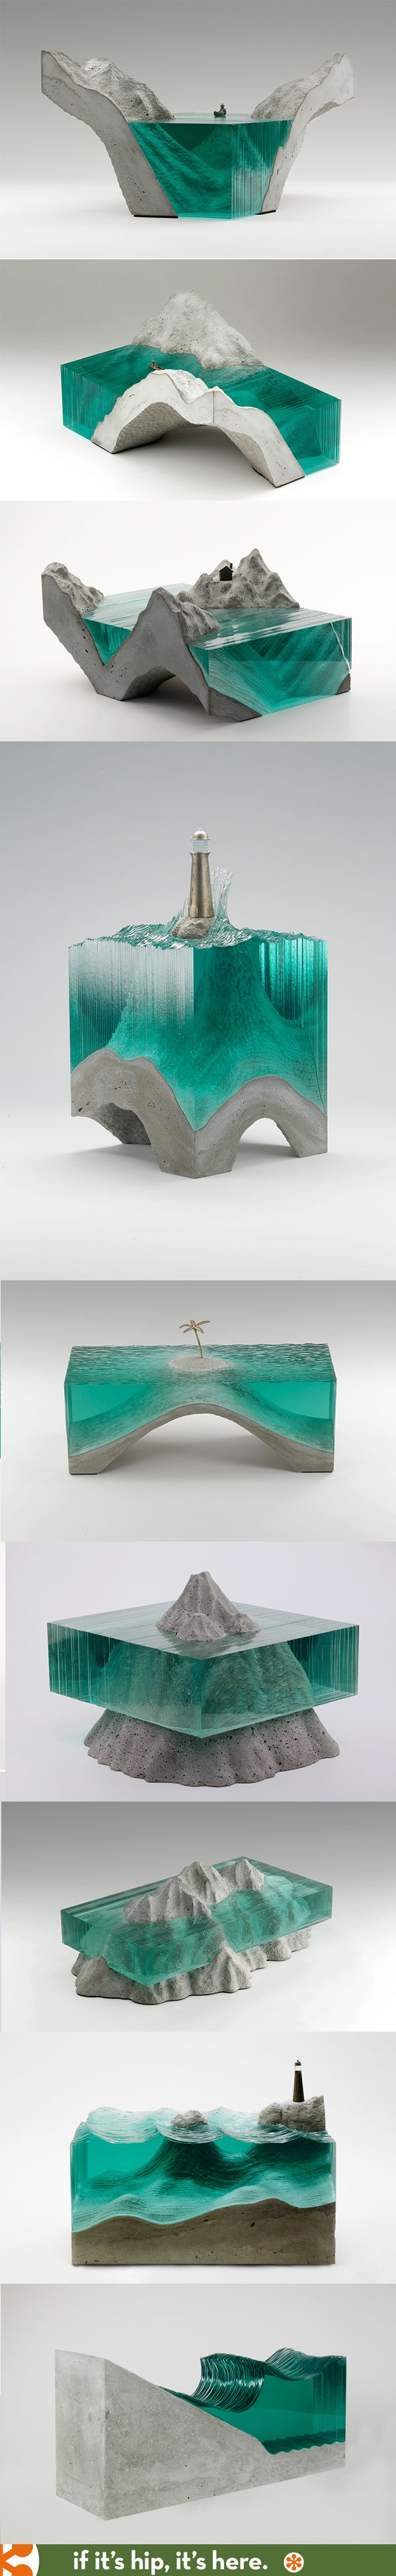 The glass and concrete sculptures of artist Ben Young ★༺❤༻★